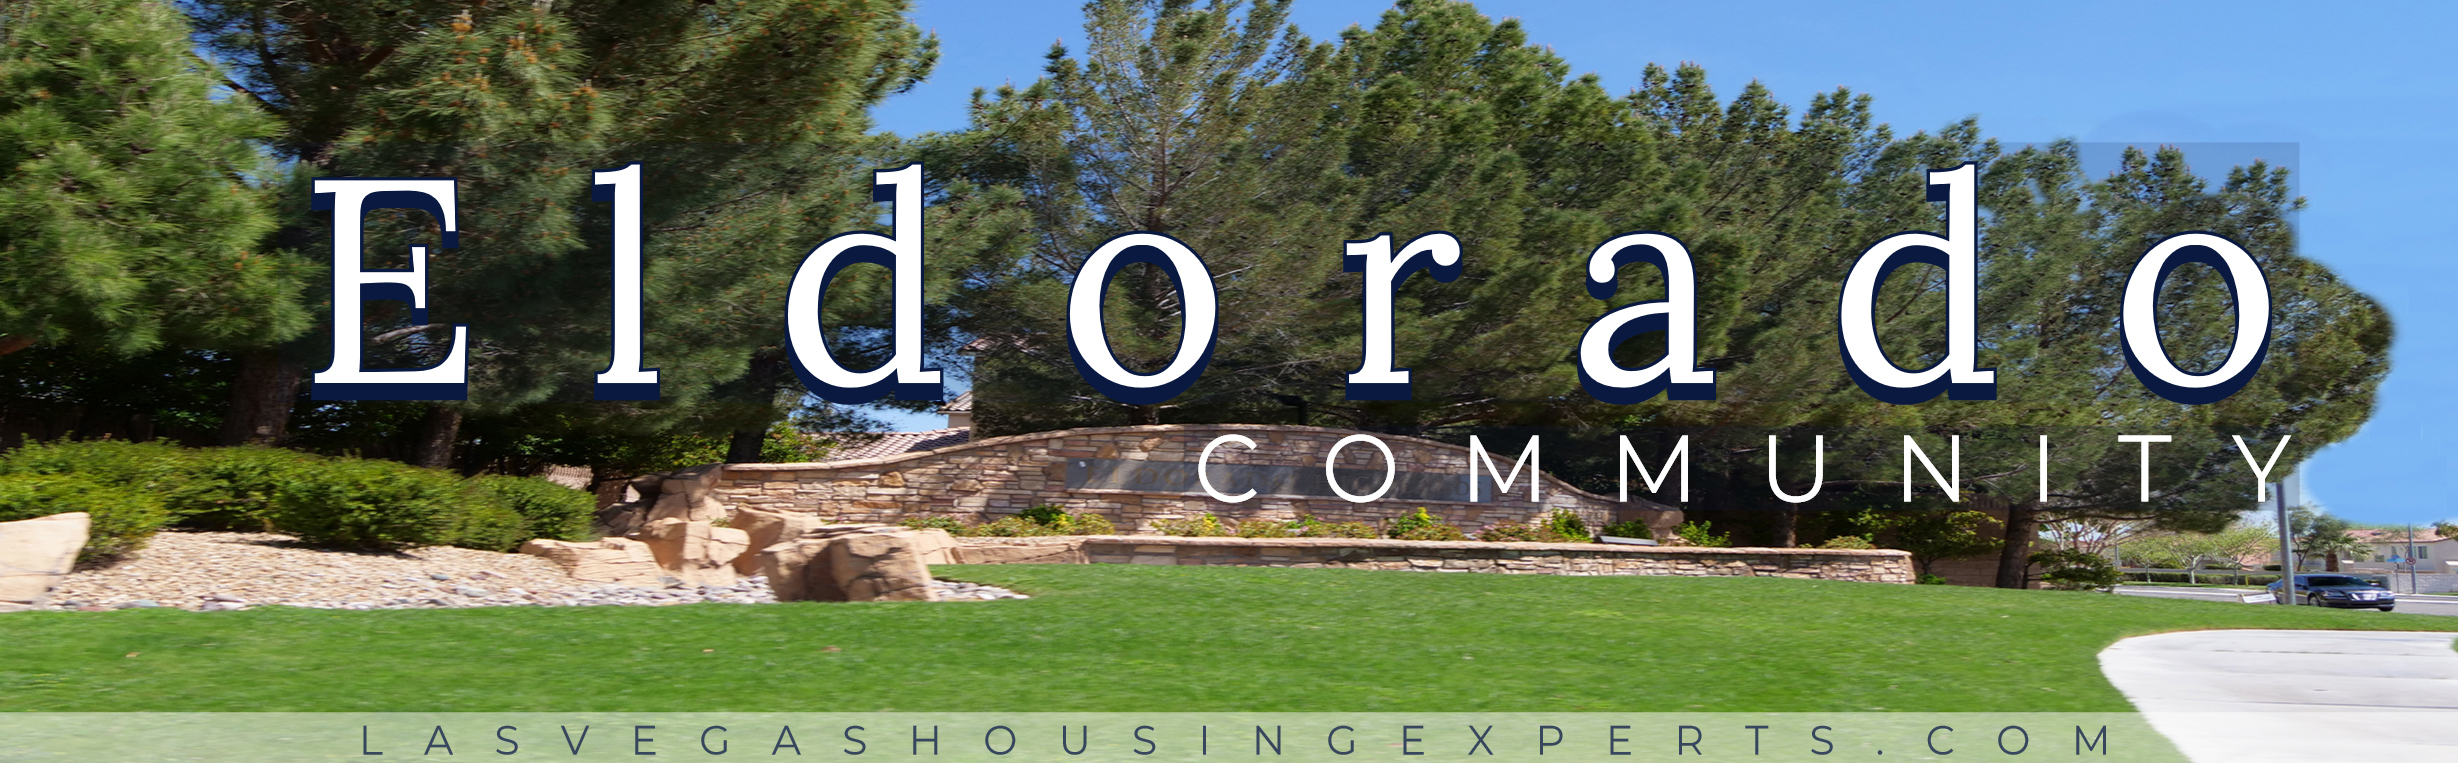 Eldorado Las Vegas Housing Experts real estate